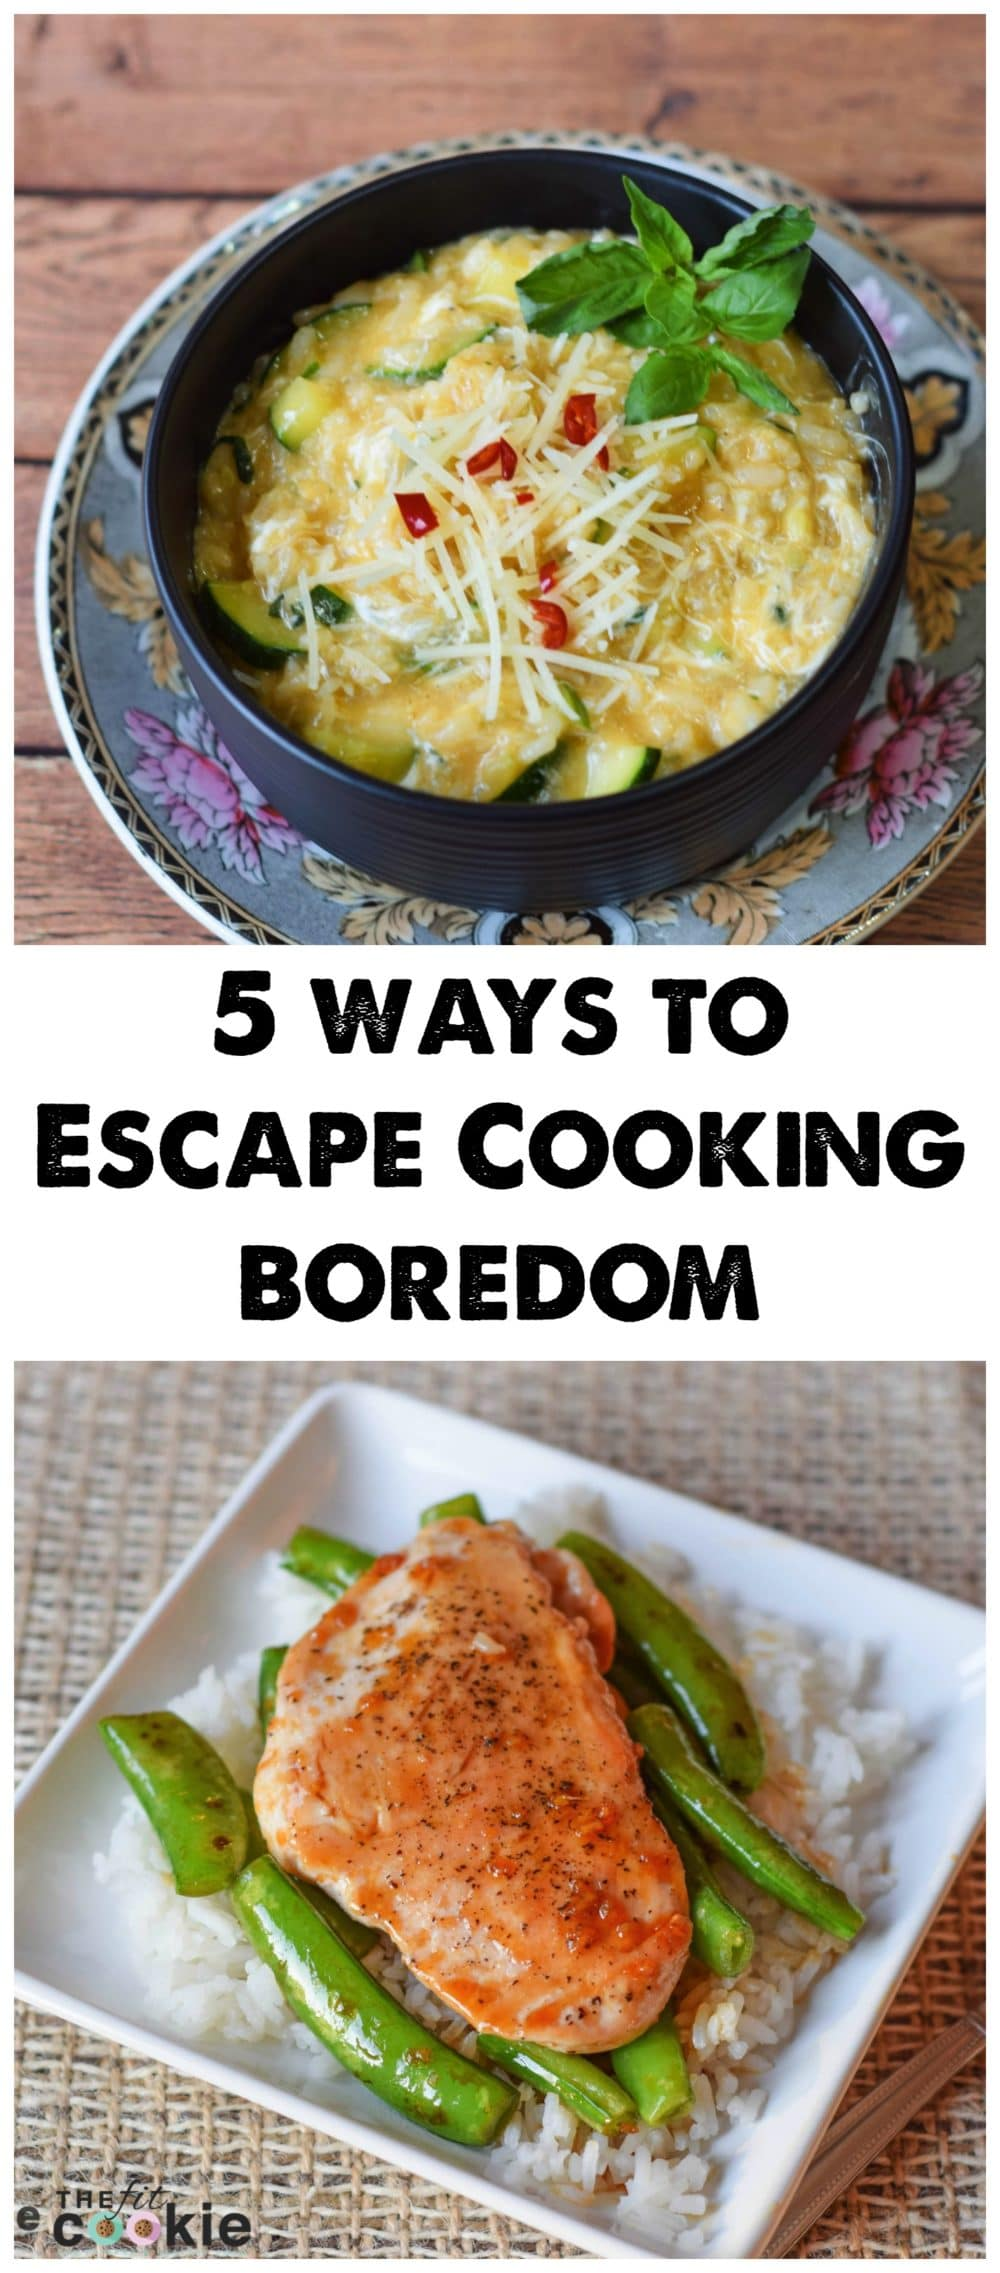 5 ways to escape cooking boredom (and a HelloFresh discount code) - @TheFitCookie #ad @HelloFresh #HelloFreshPics #cbias